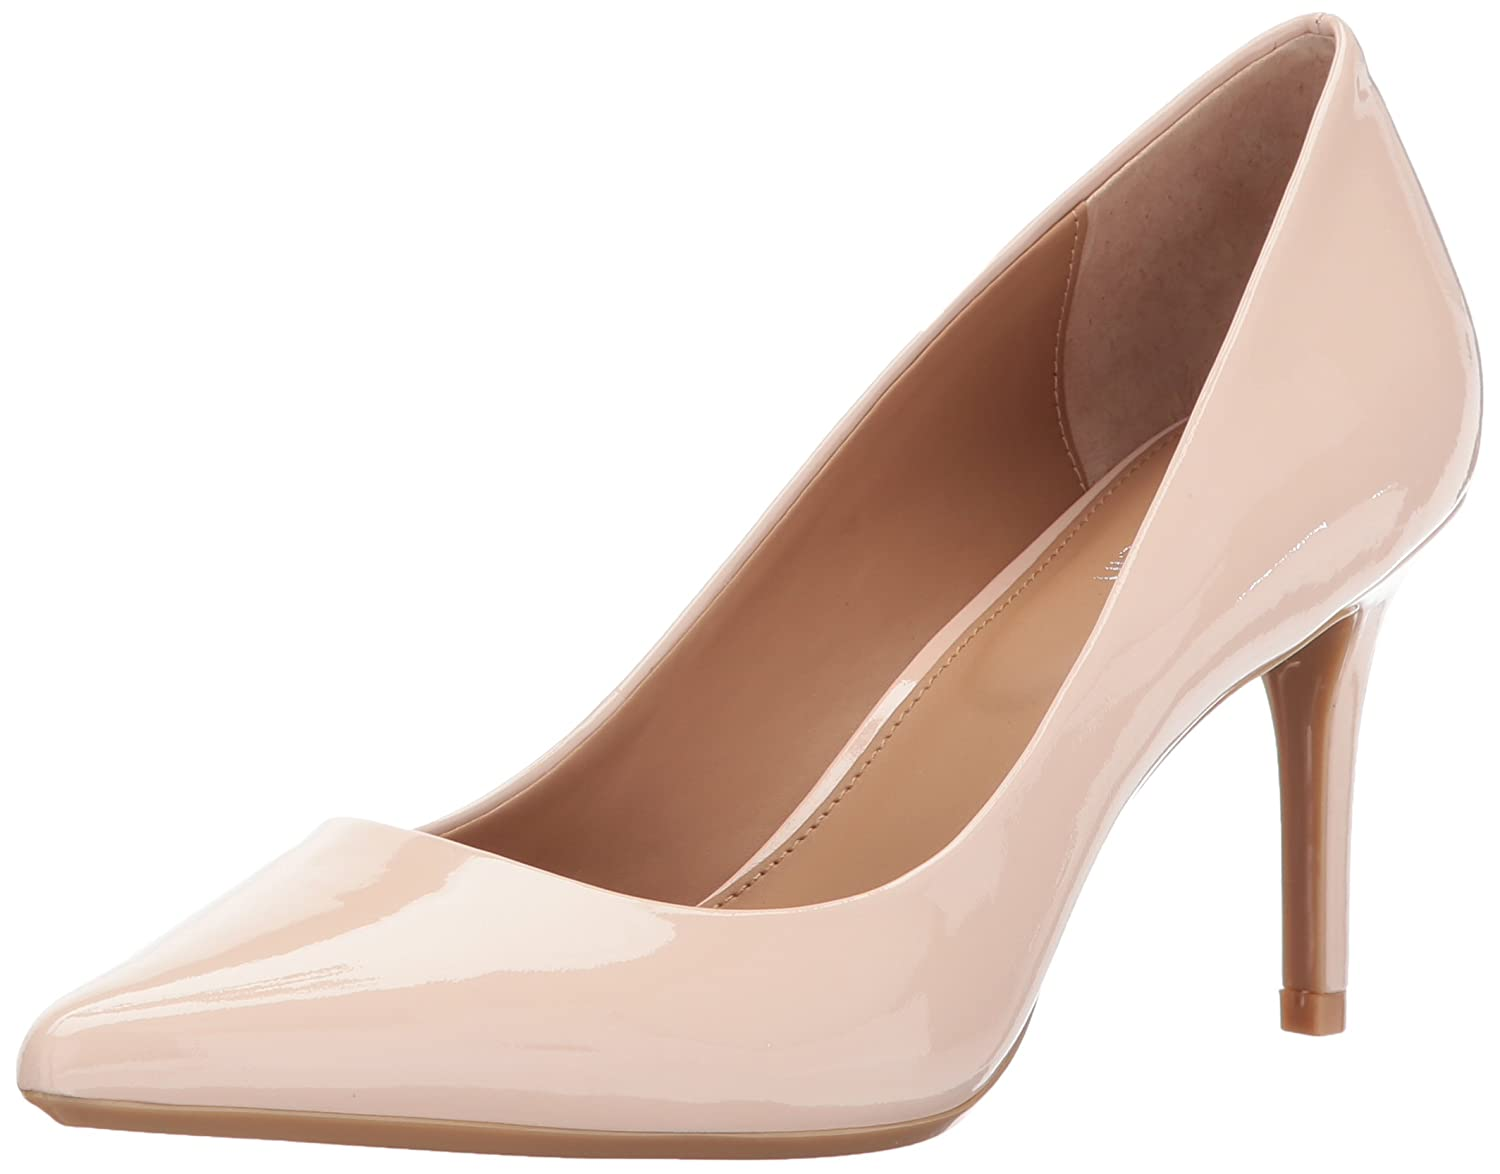 Calvin Klein Women's Gayle Pump B071KGNDX6 11 B(M) US|Sheer Satin